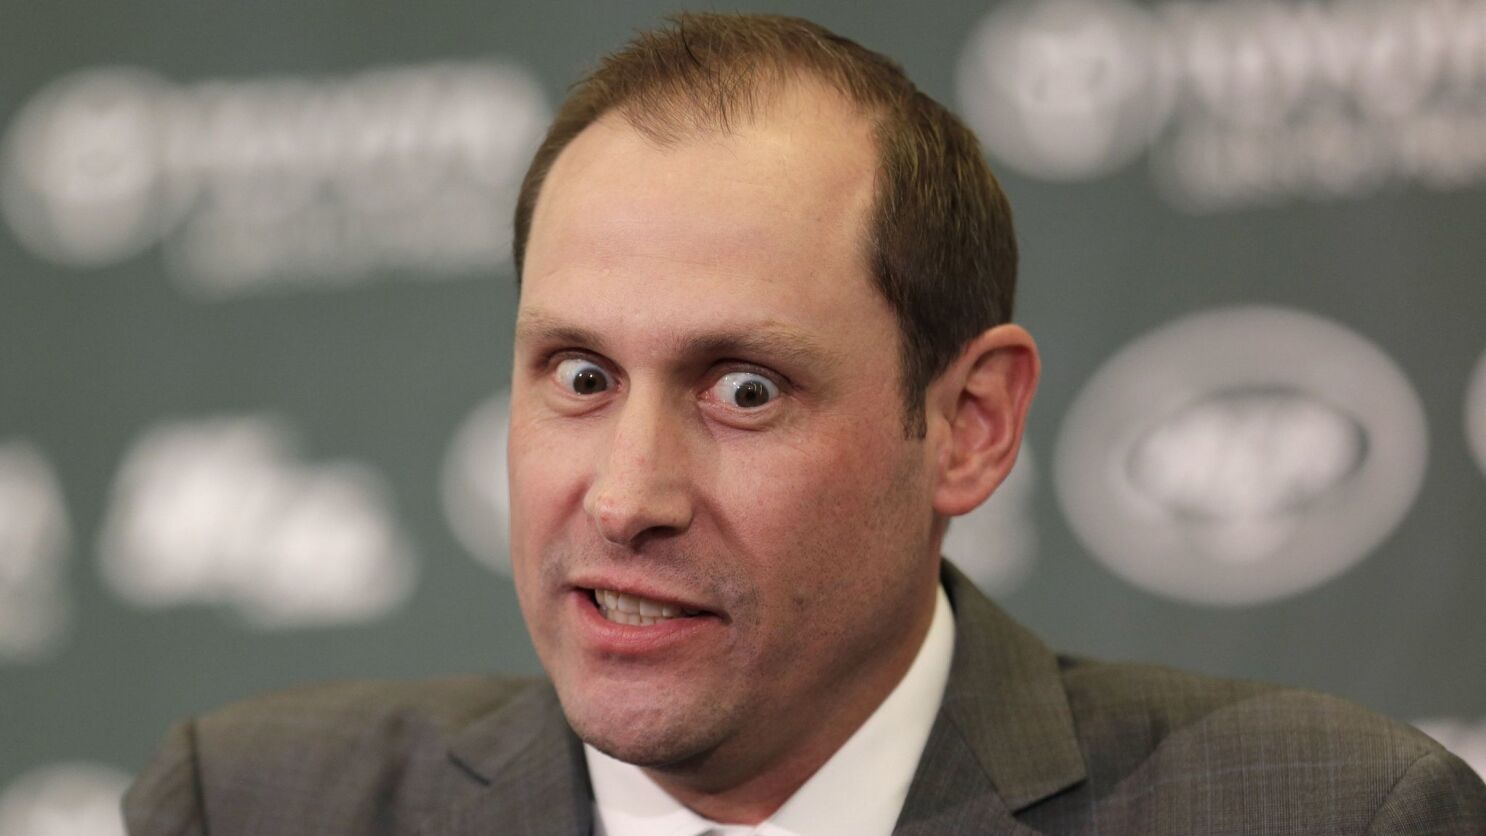 Adam Gase simply appears uncomfortable in certain situations - The San  Diego Union-Tribune